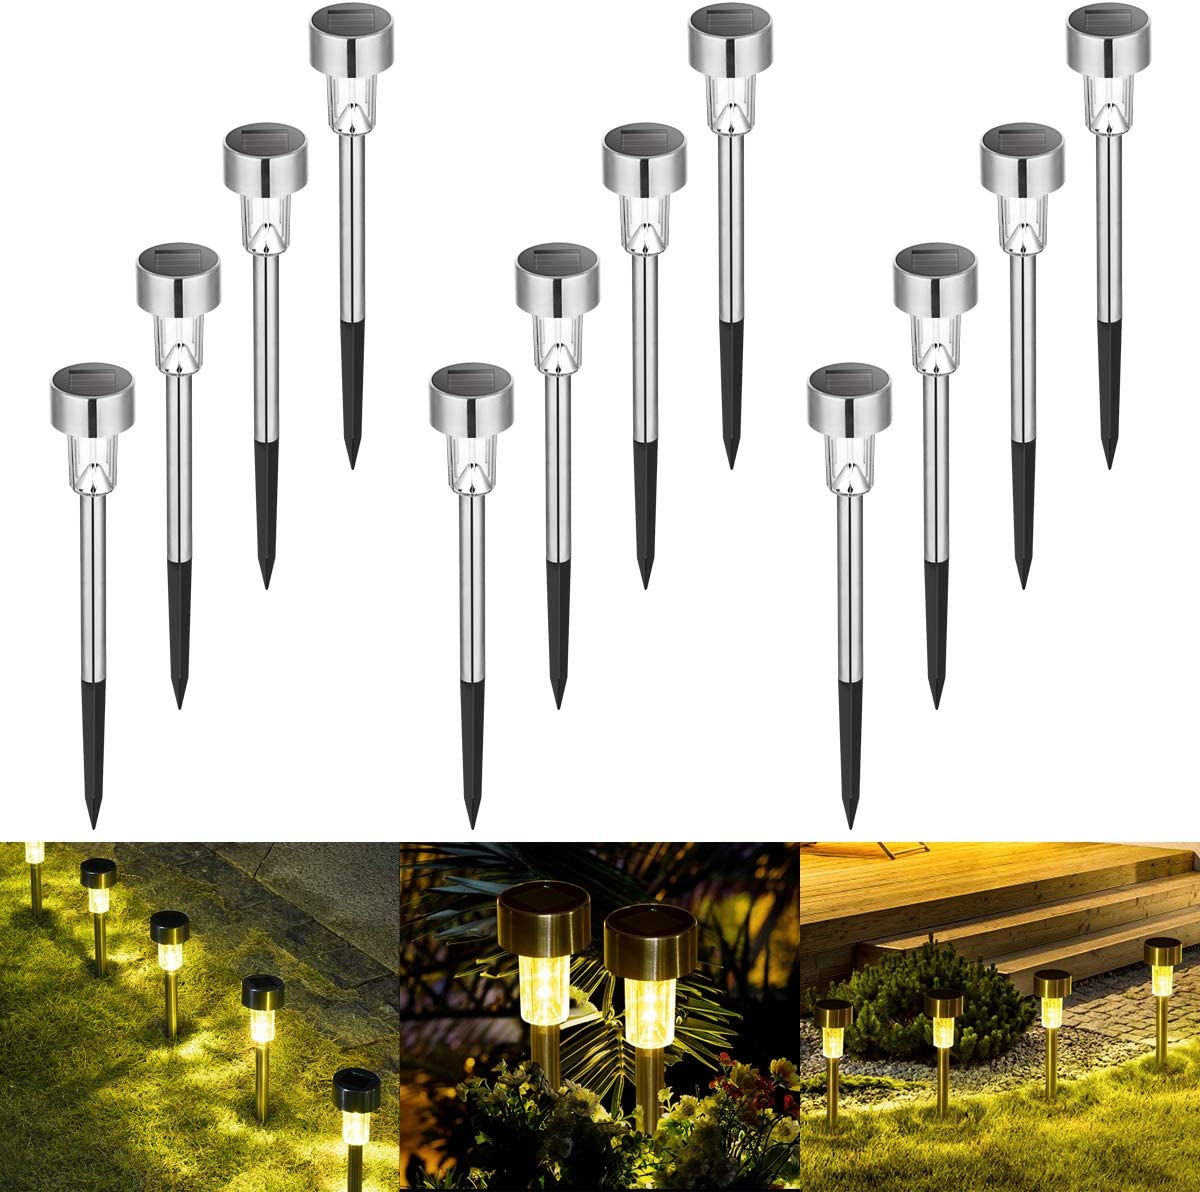 Sowsun Solar Pathway Lights Outdoor ,Solar Powered Landscape Garden Lights for Pathway ,Lawn, Patio, Yard,Path,Walkway Decoraiton-12 Pack warm white